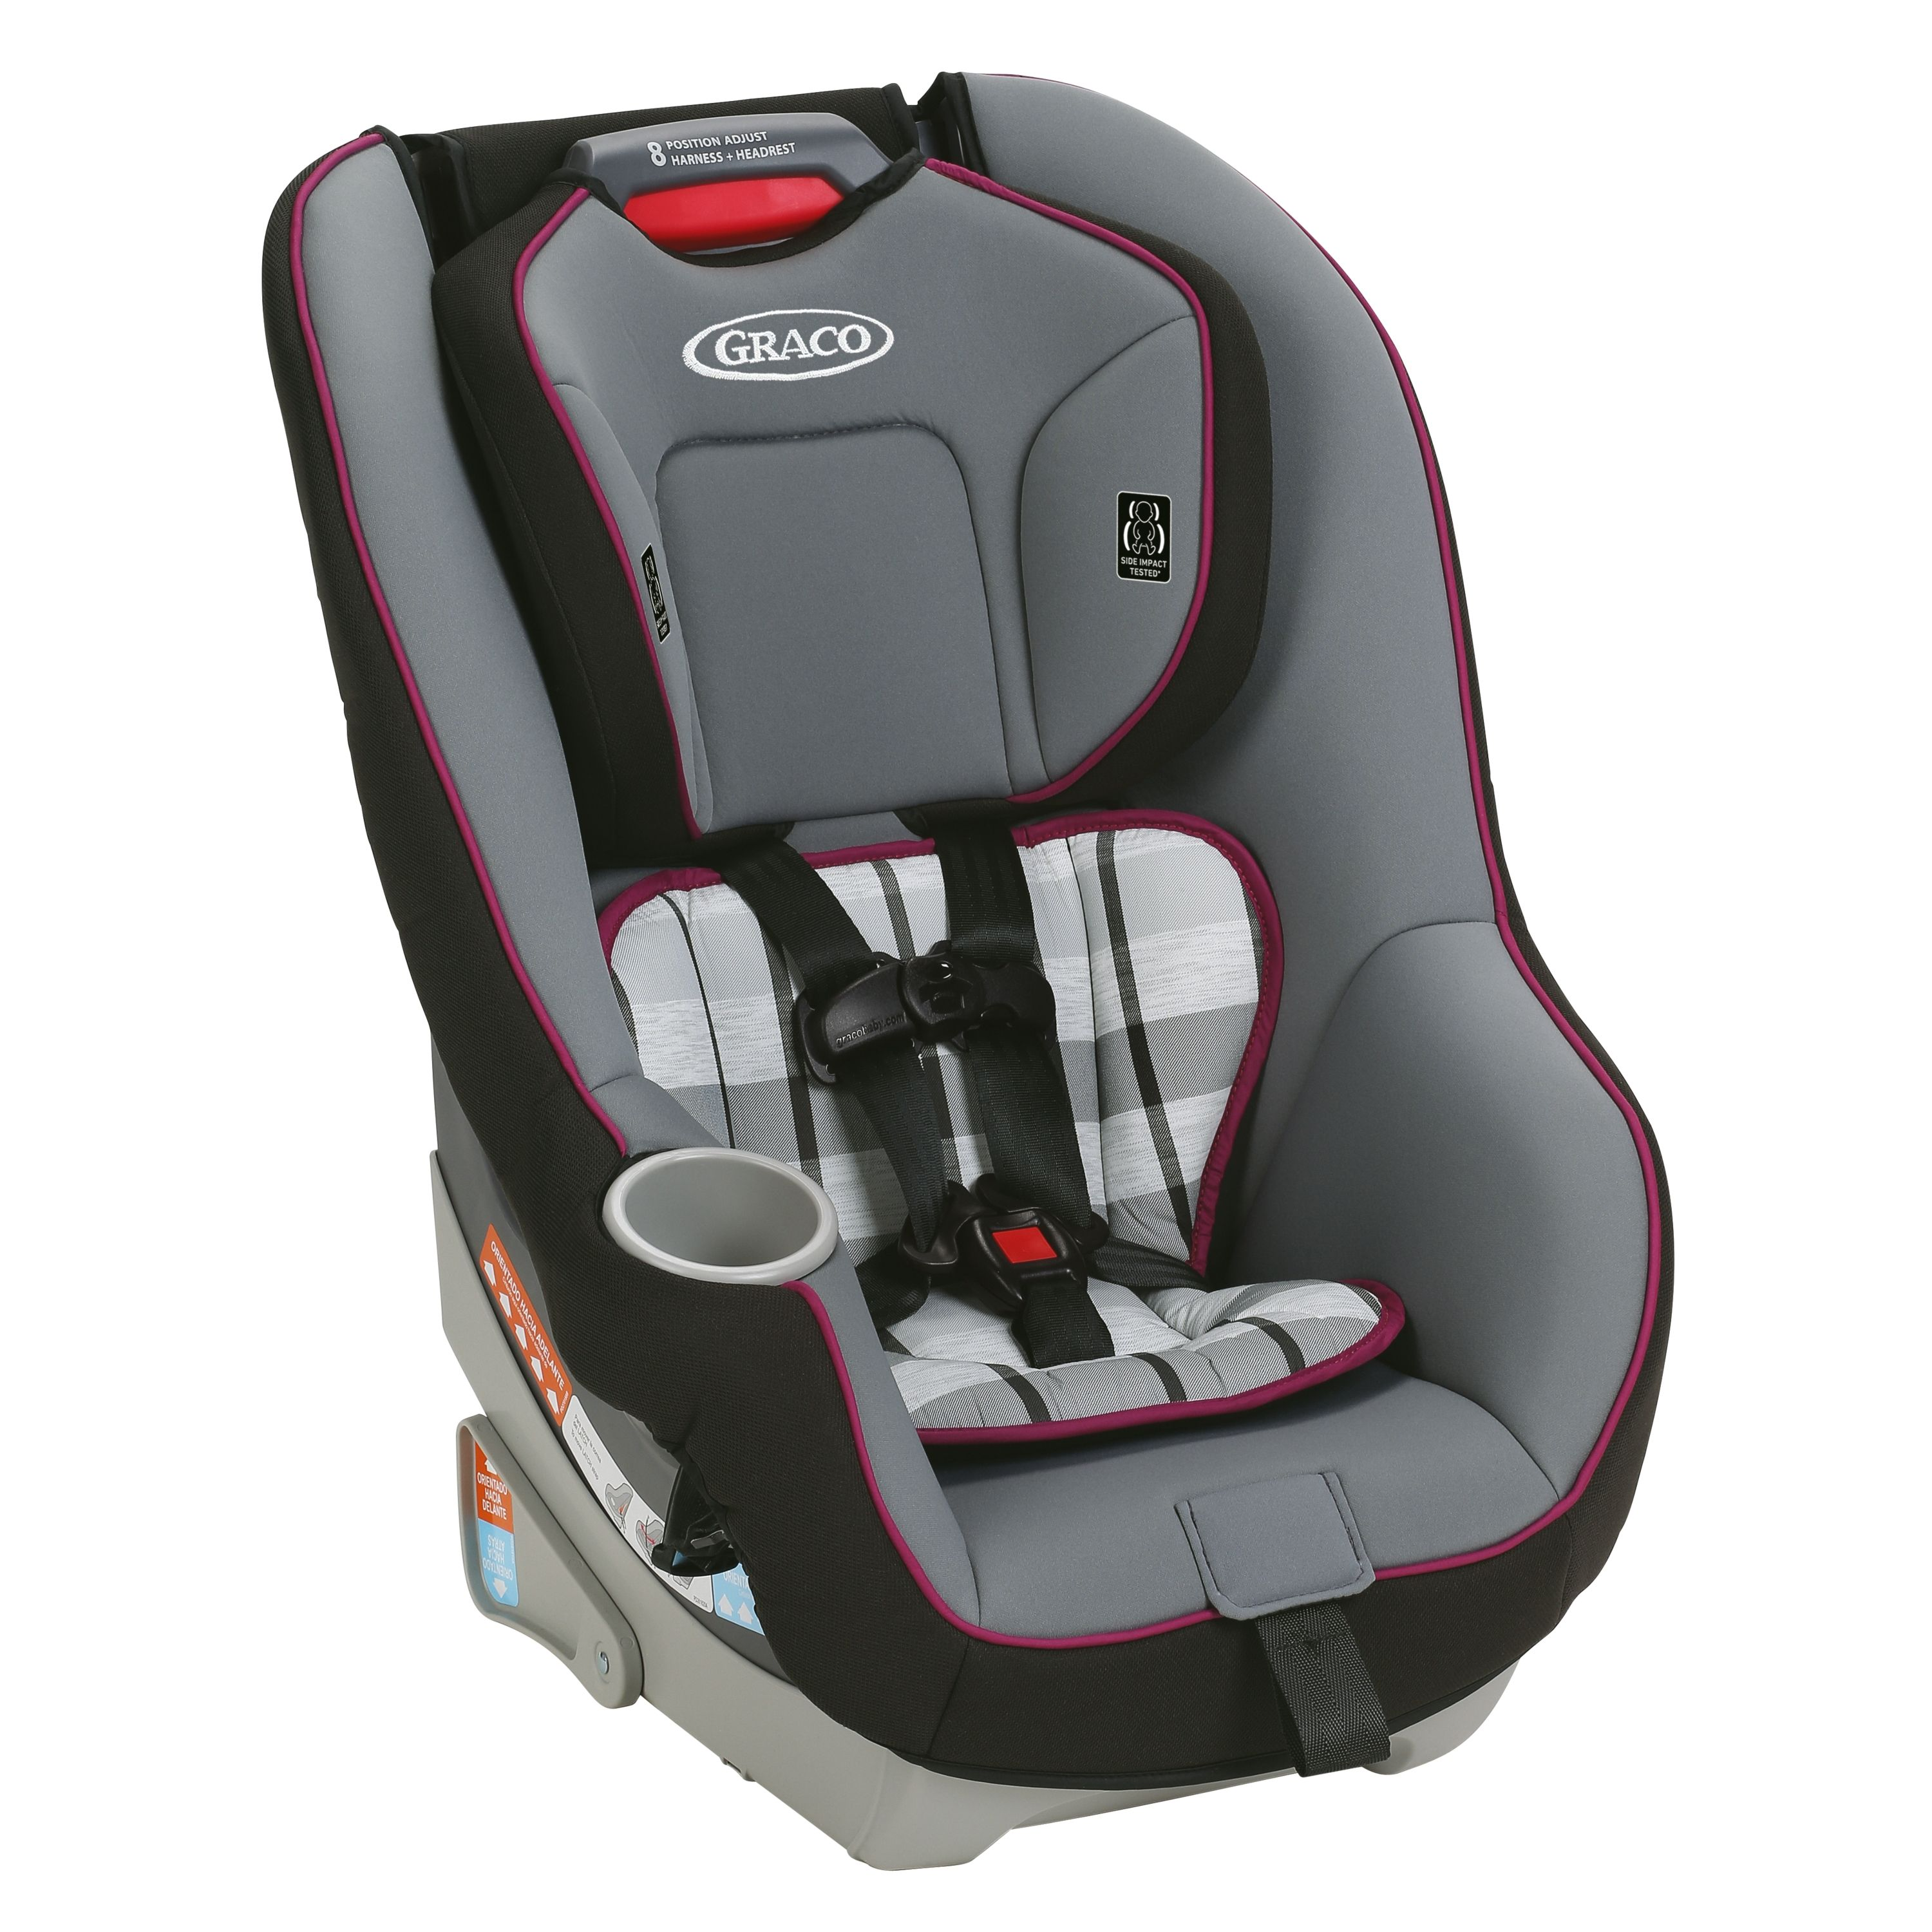 41++ Graco car seat contender 65 ideas in 2021